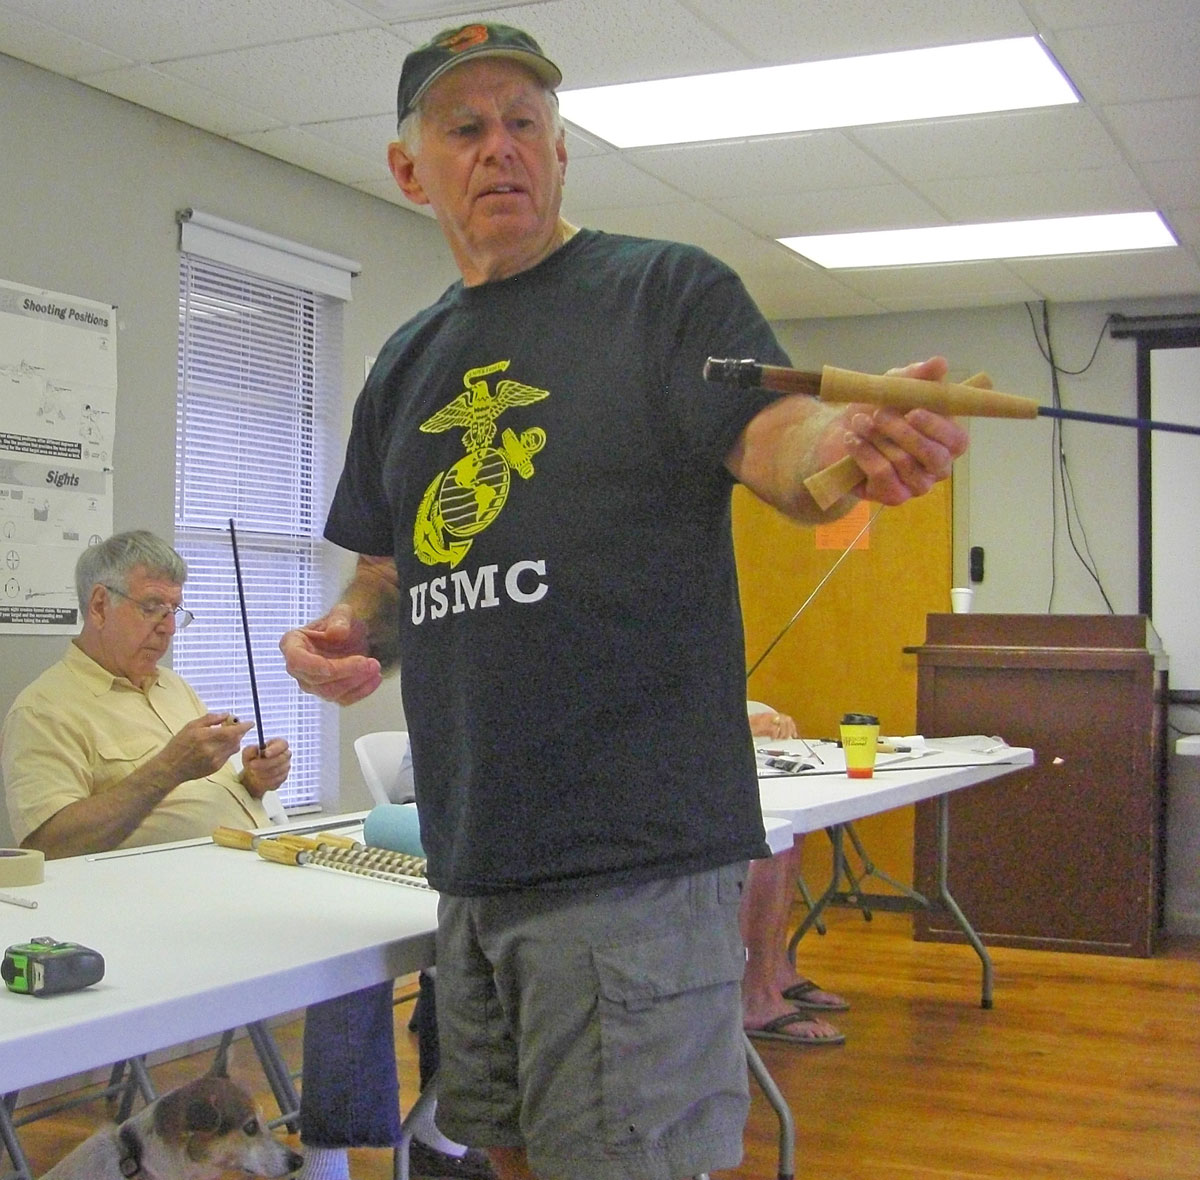 Roger Breedlove has built dozens of fly rods, and teaches rod building classes. Here he examines a rod where the grip and reel seat have just been epoxied onto the blank.